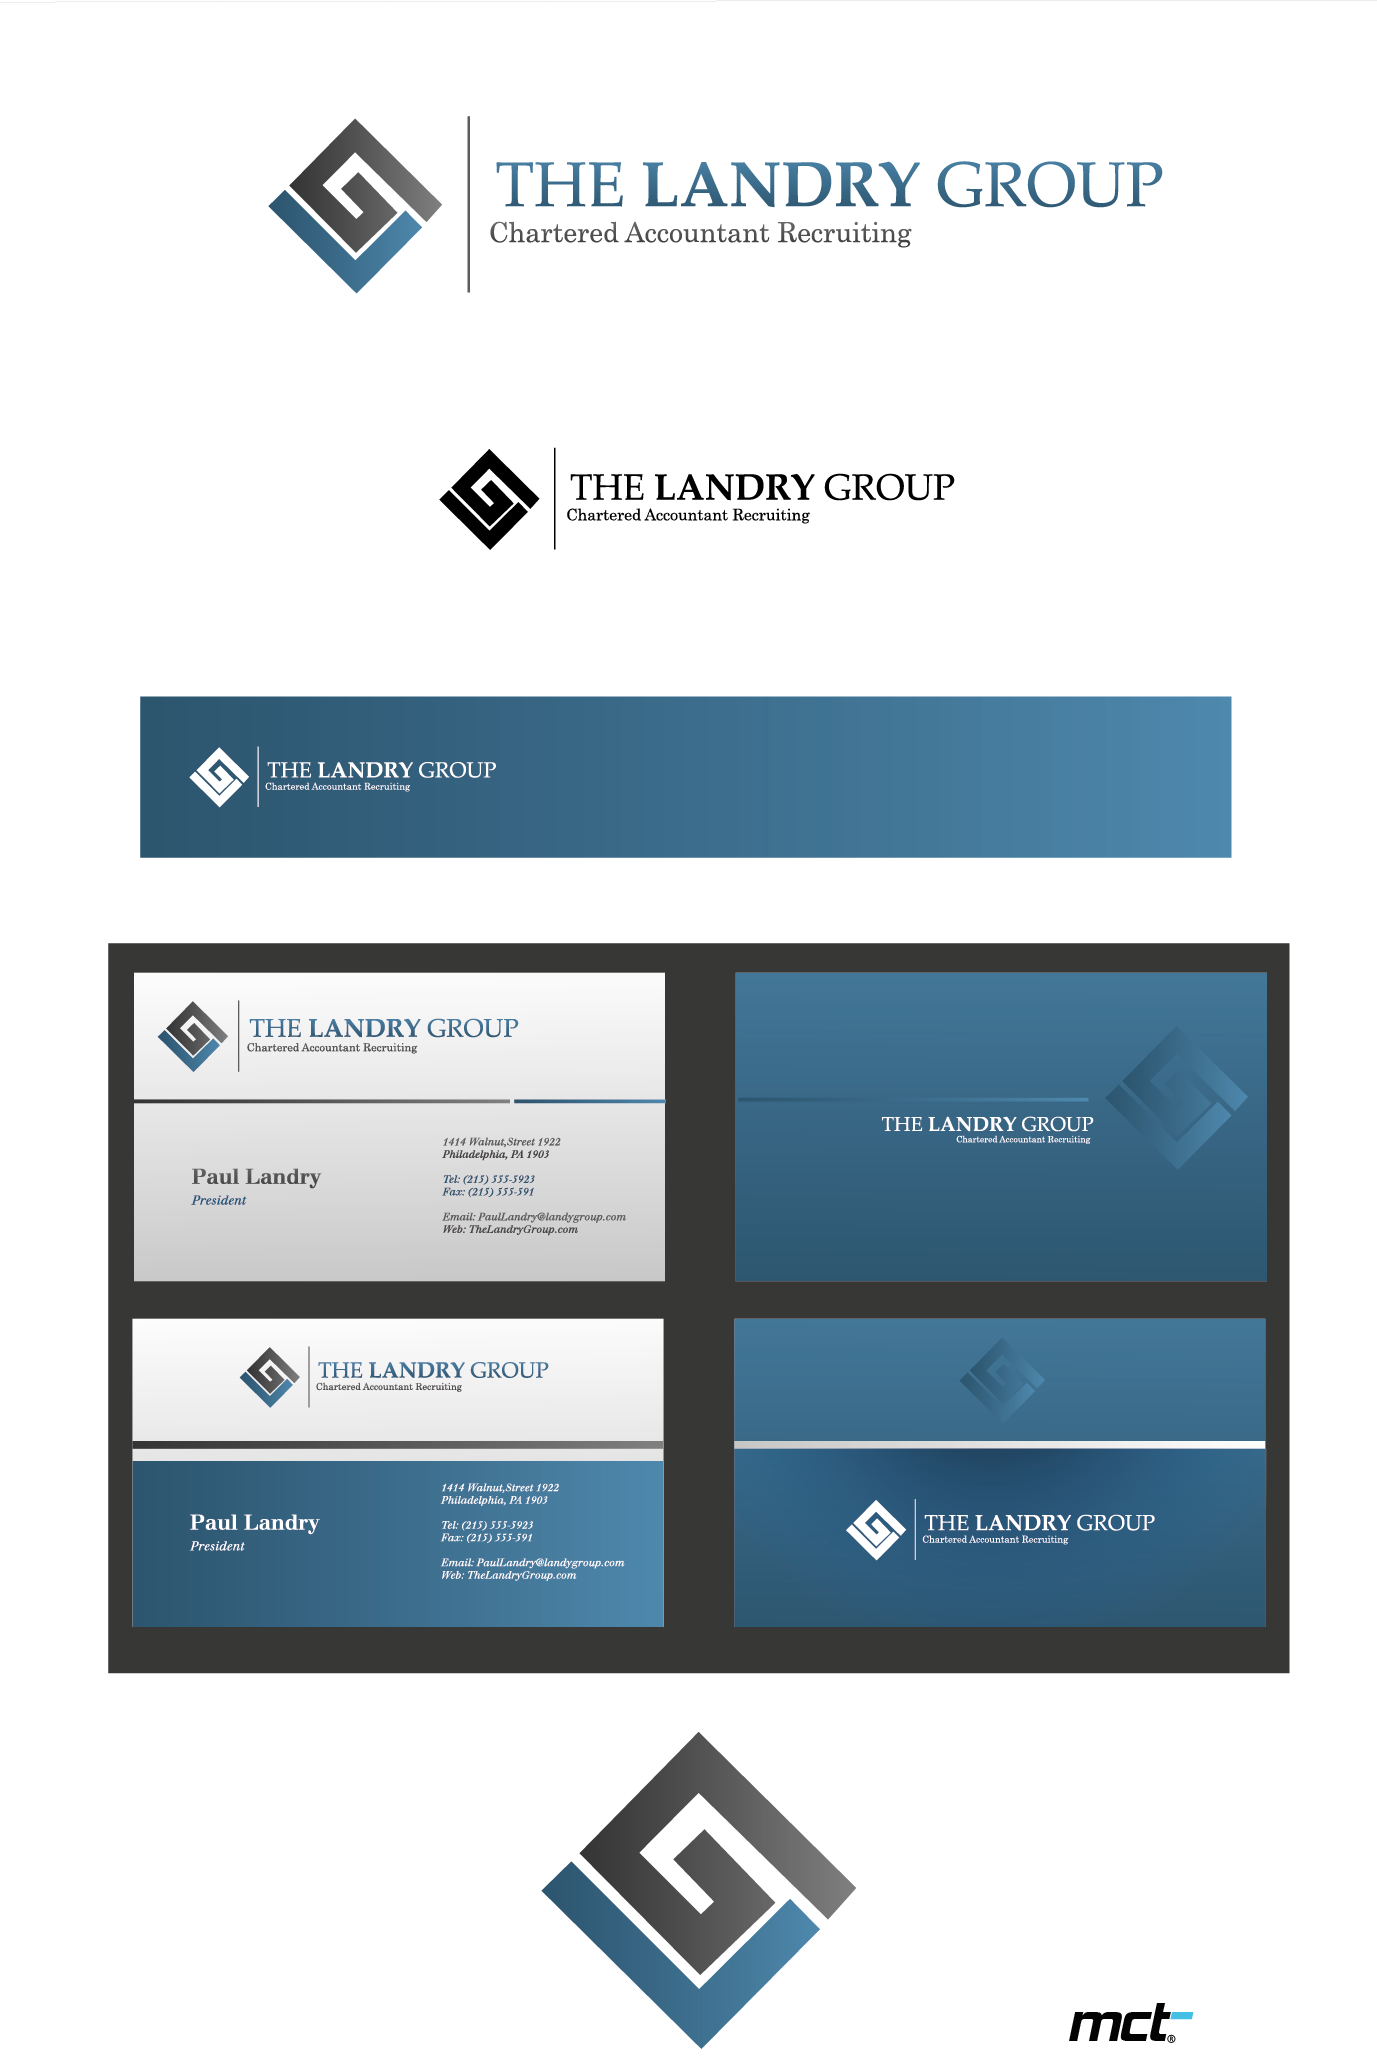 Create the next logo for 'The Landry Group'